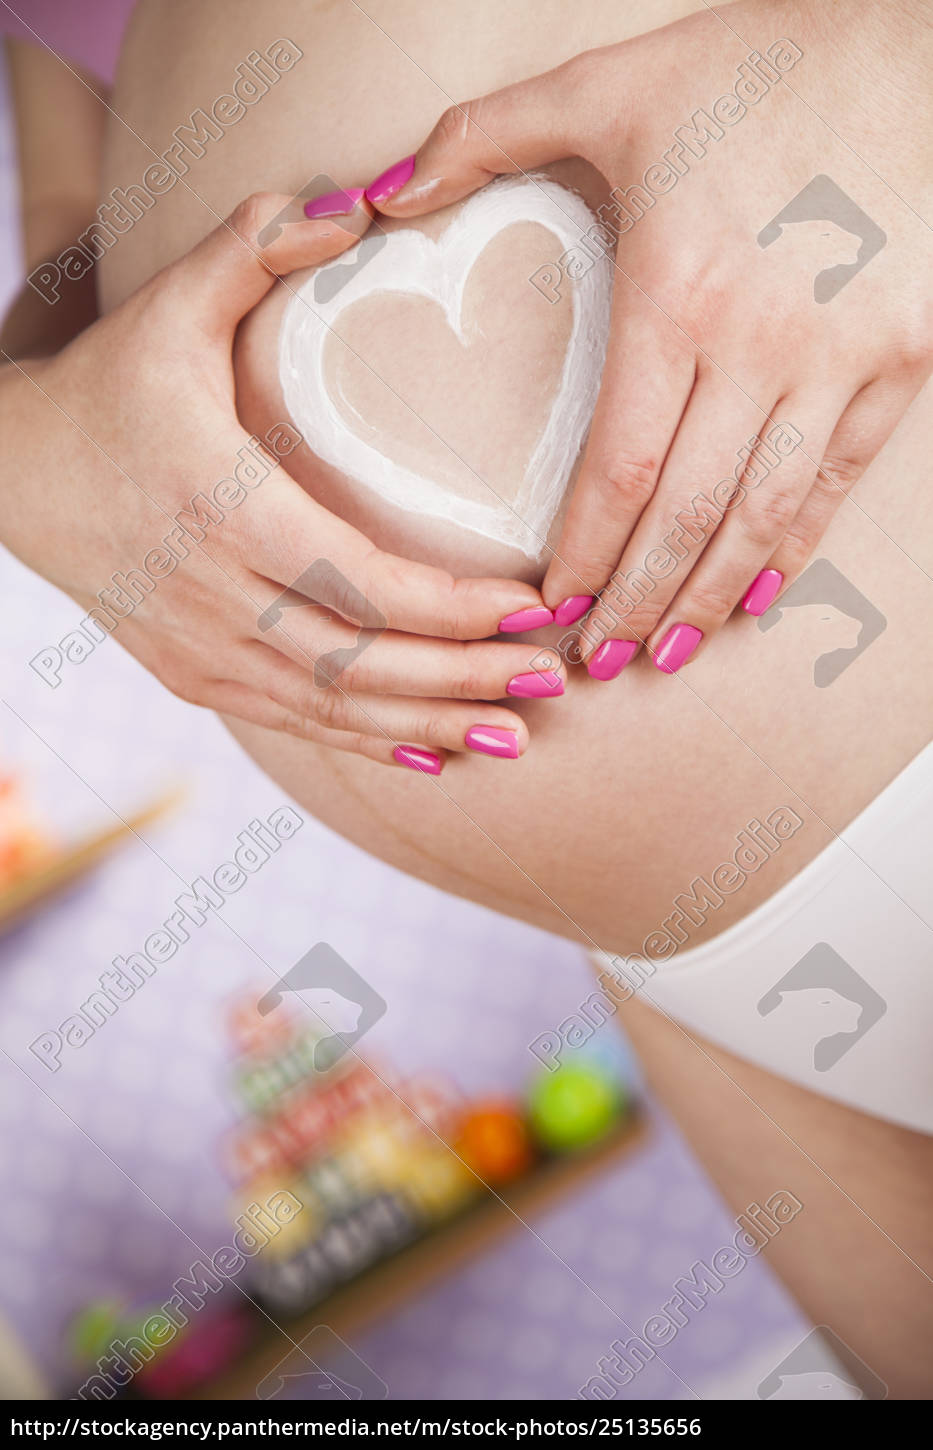 pregnant, woman, holding, a, heart - 25135656